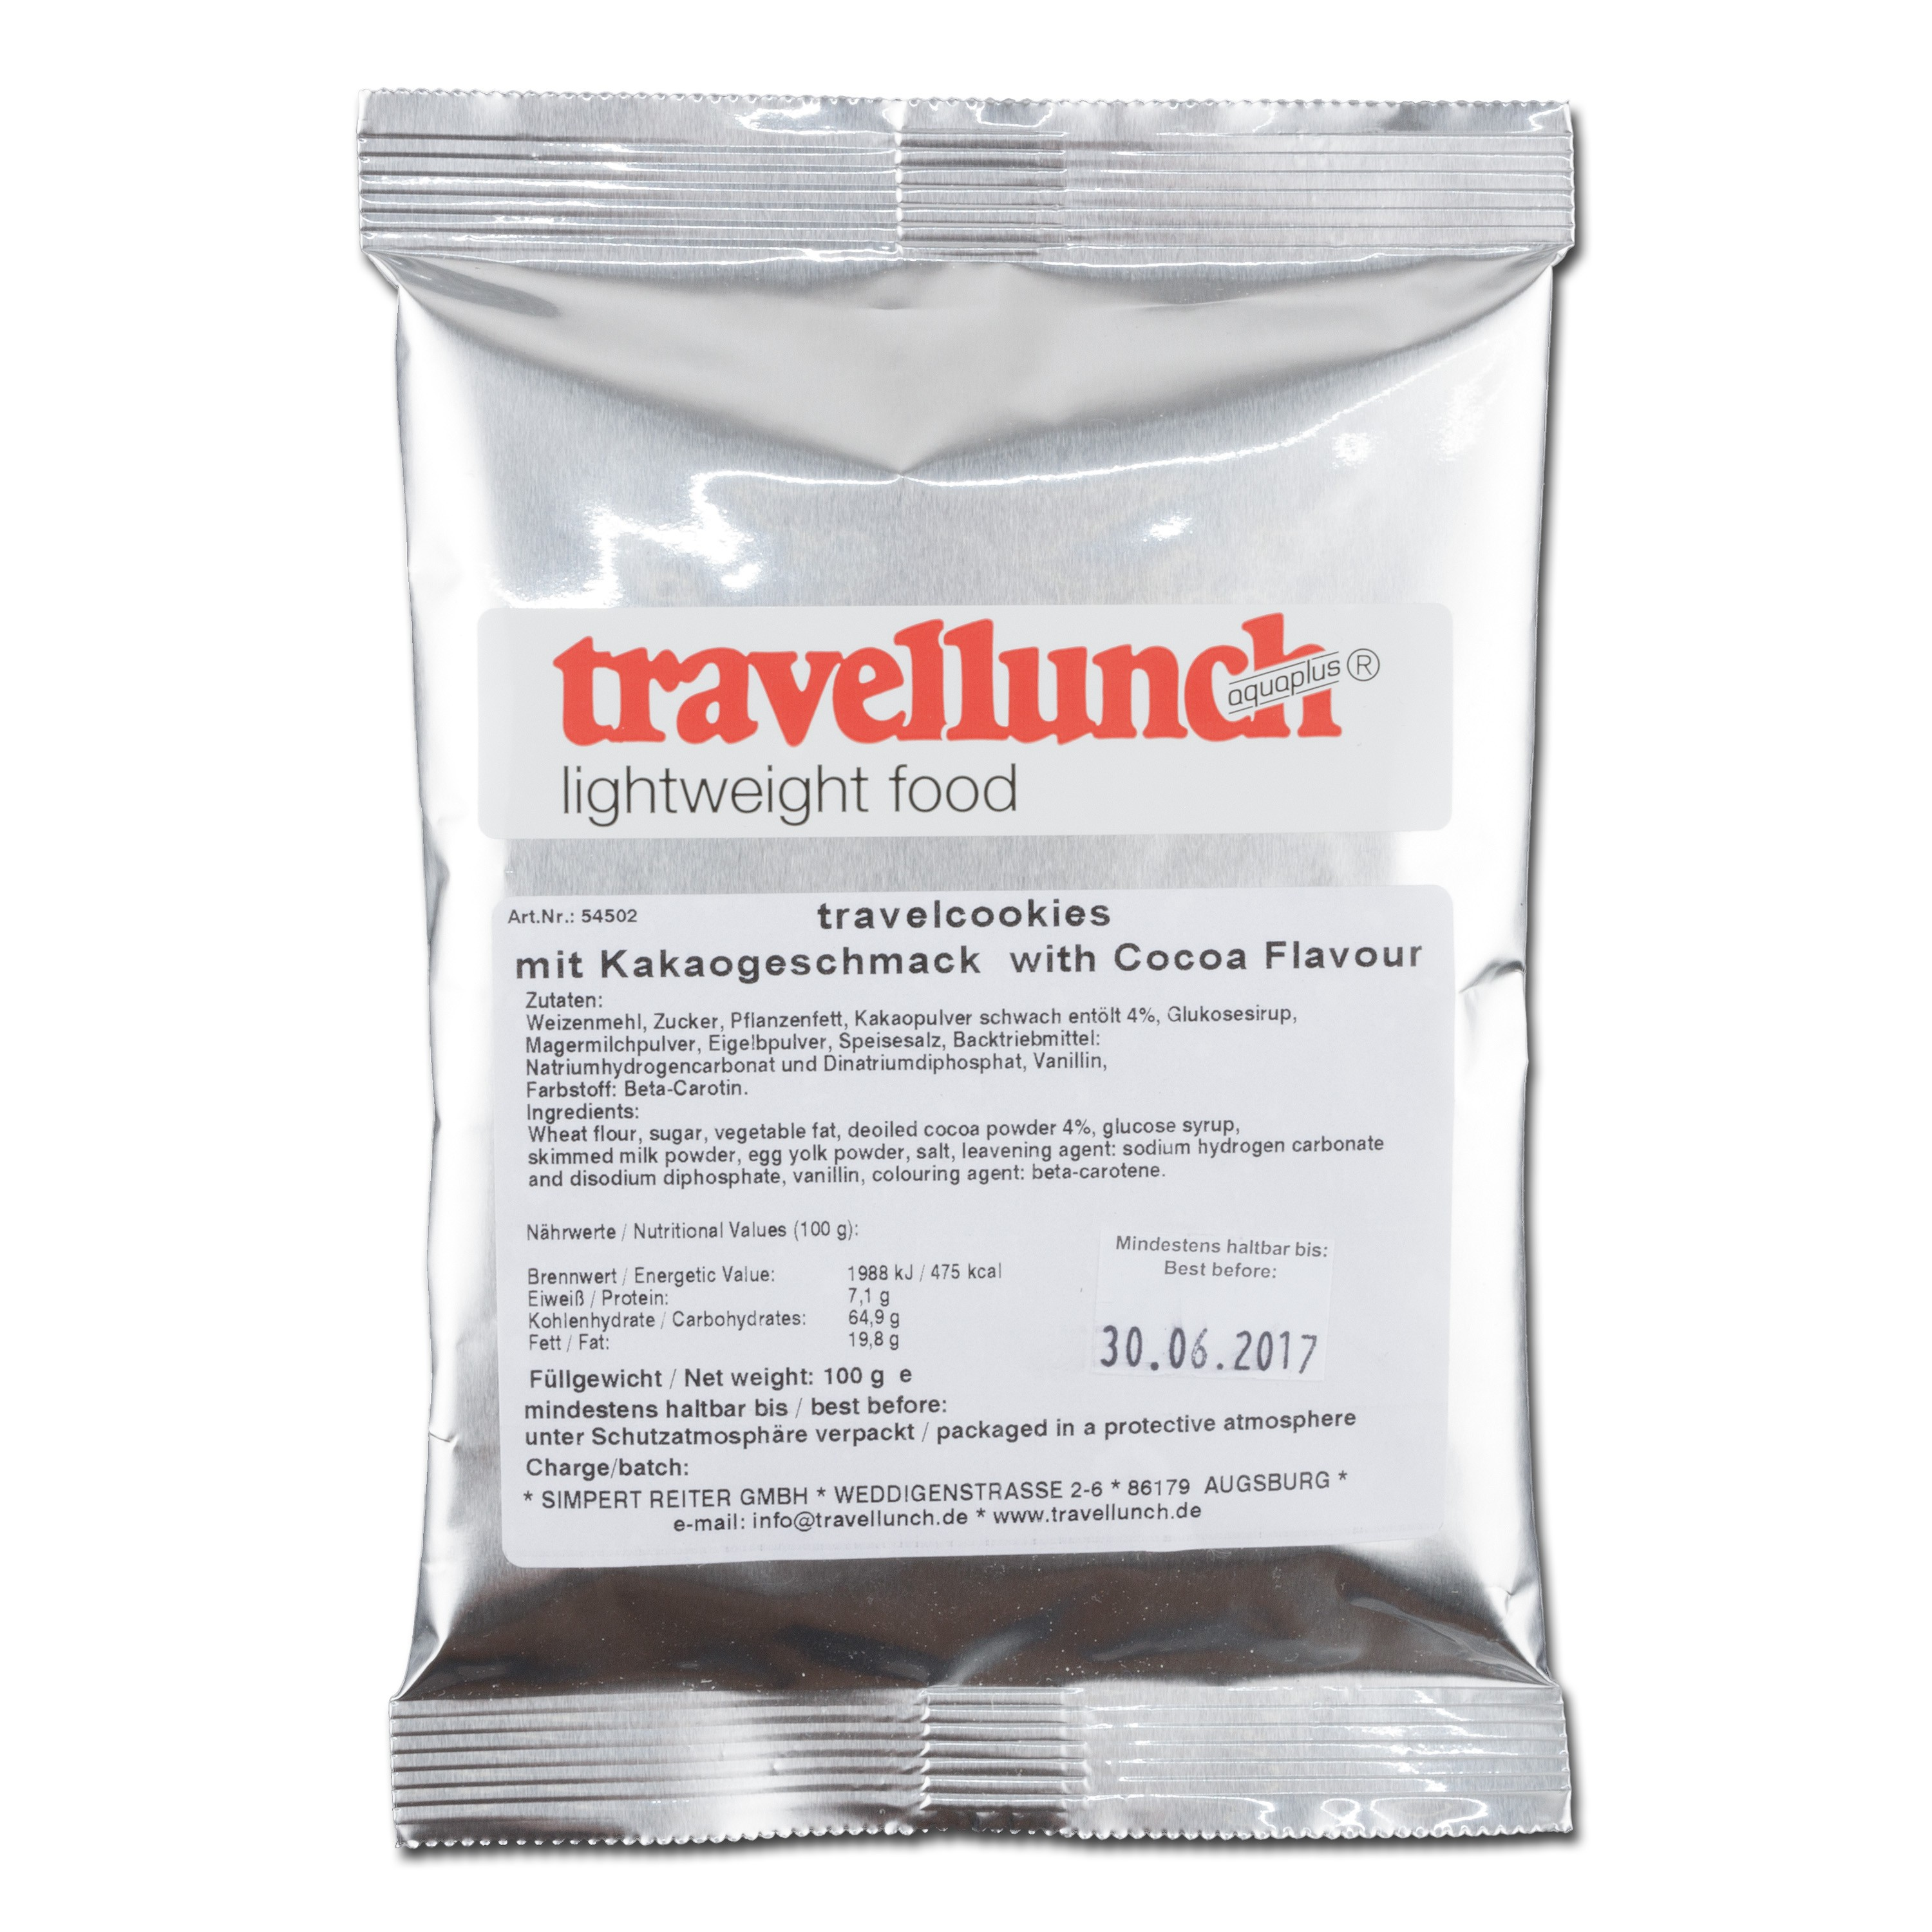 Travellunch Travelcookies arôme cacao